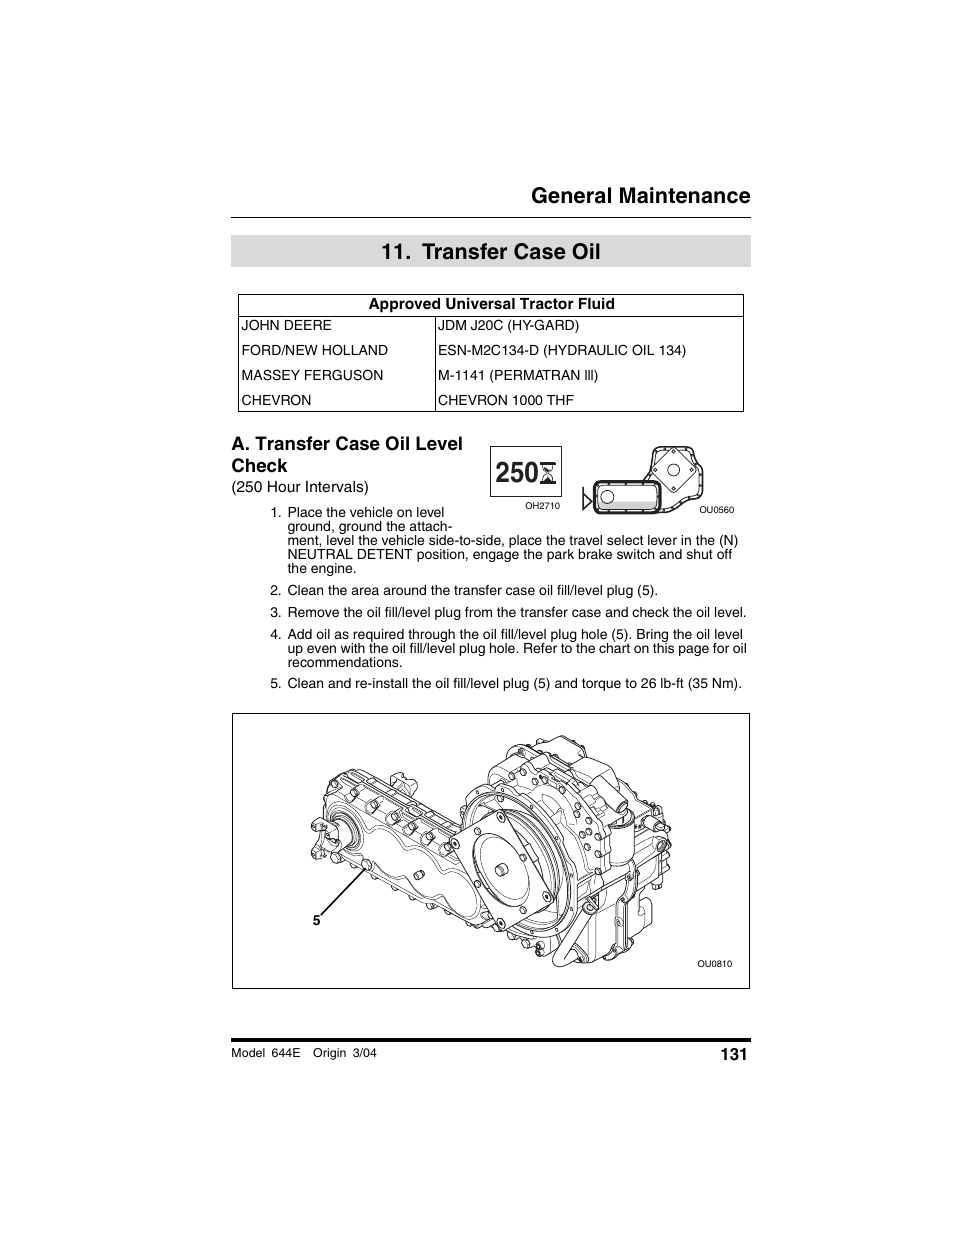 transfer case oil, Approved universal tractor fluid, A